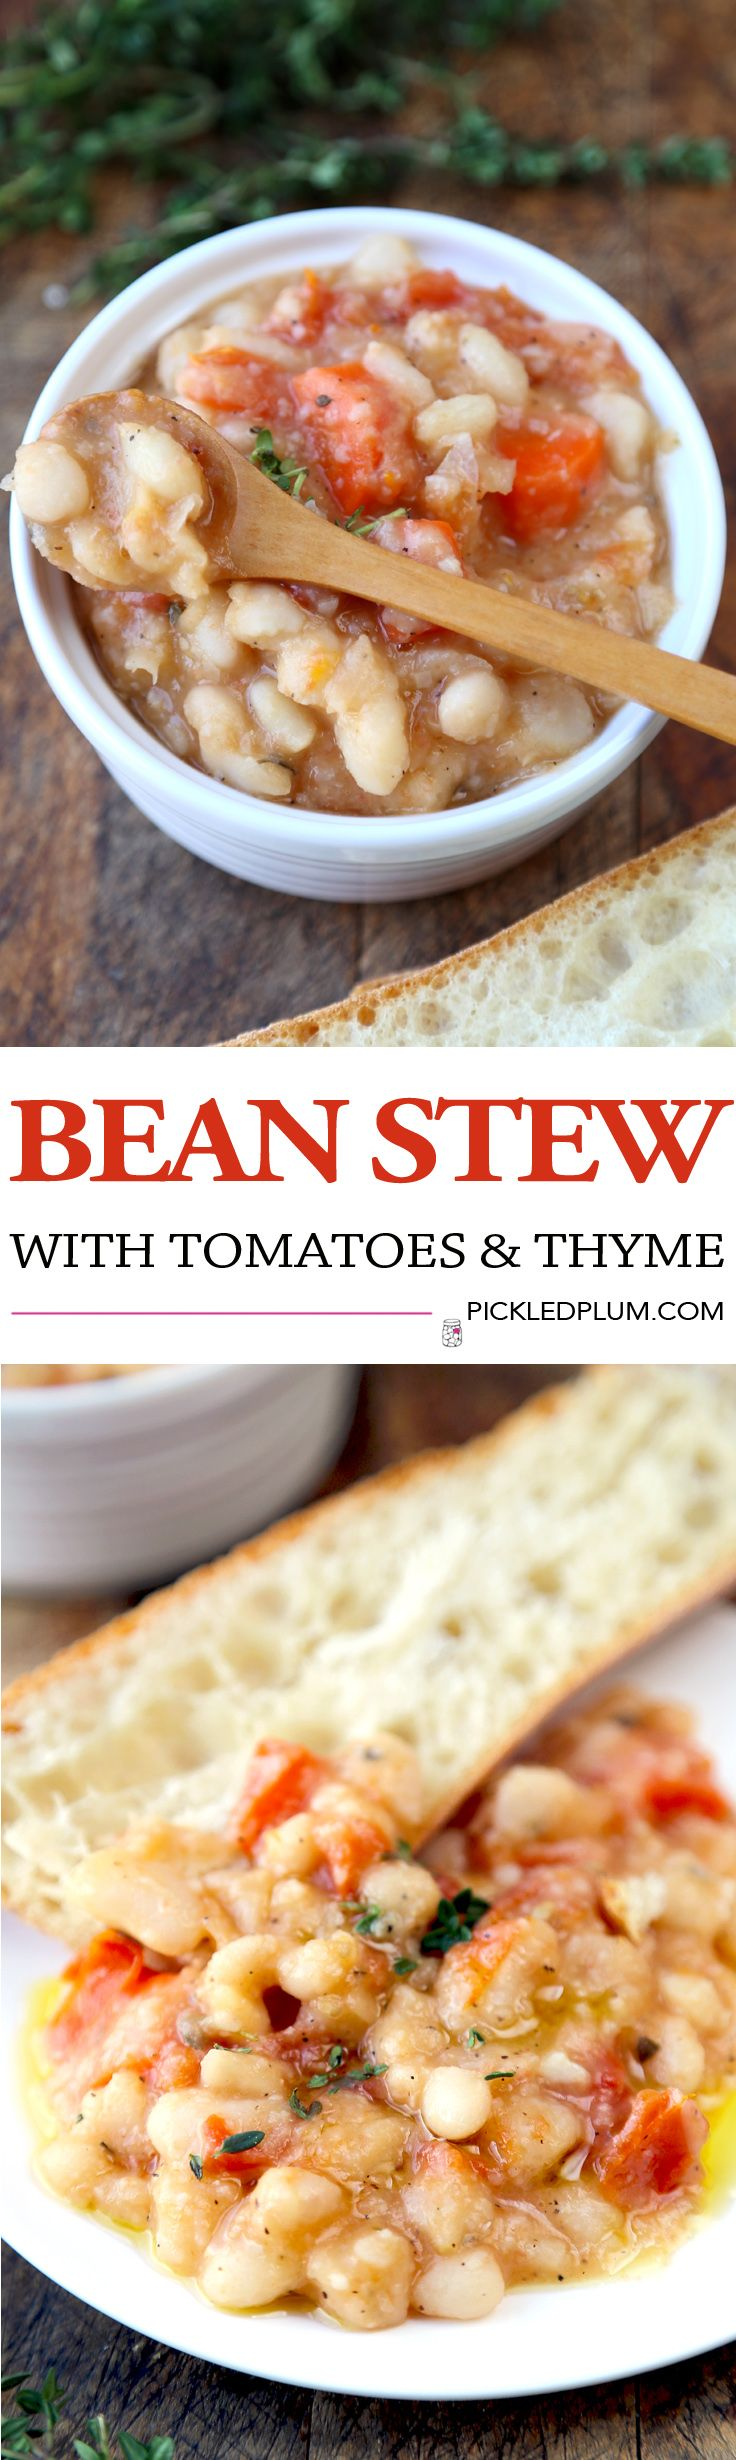 Hearty Bean Stew with Tomatoes and Thyme - Healthy Comfort food perfect for the holiday season! Total prep time: 5 minutes. Gluten Free, Vegan | pickledplum.com